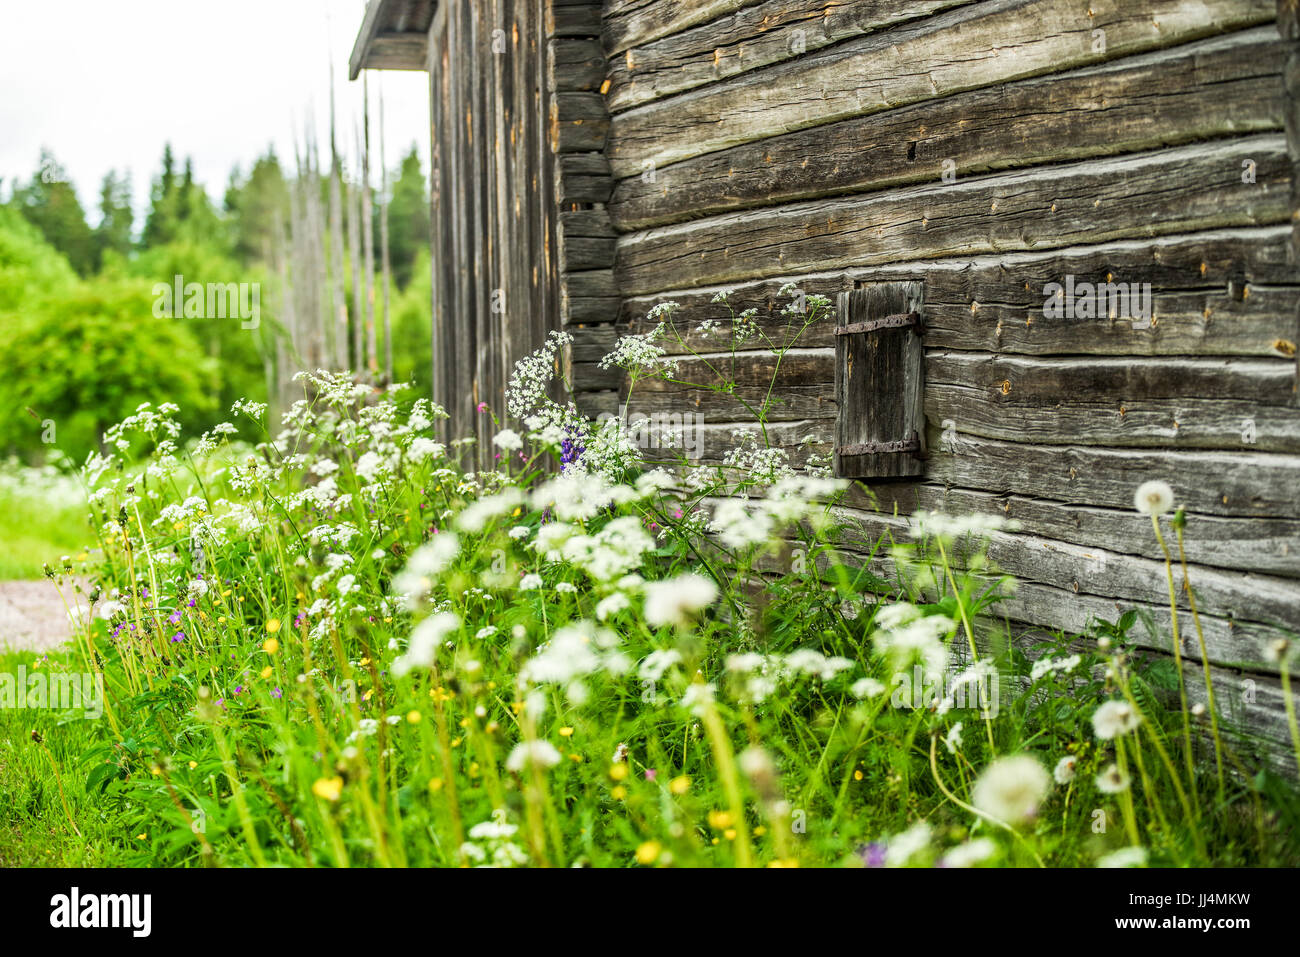 Old traditional wooden house with summer flowers in front located in Orsa Dalarna Sweden - Stock Image